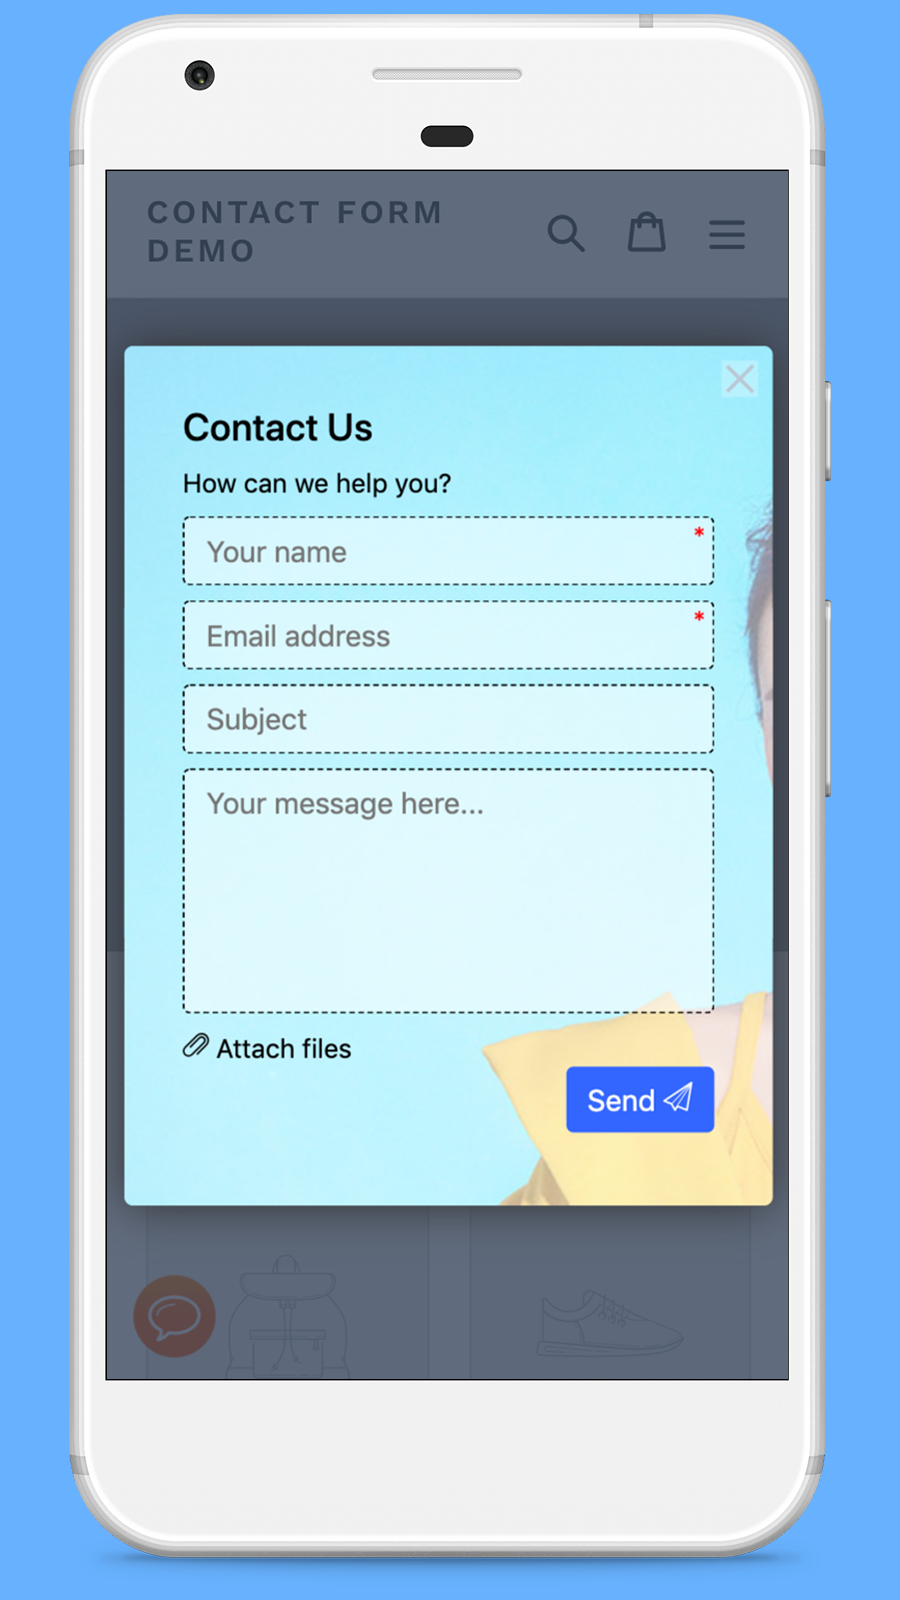 Contact form on mobile devices